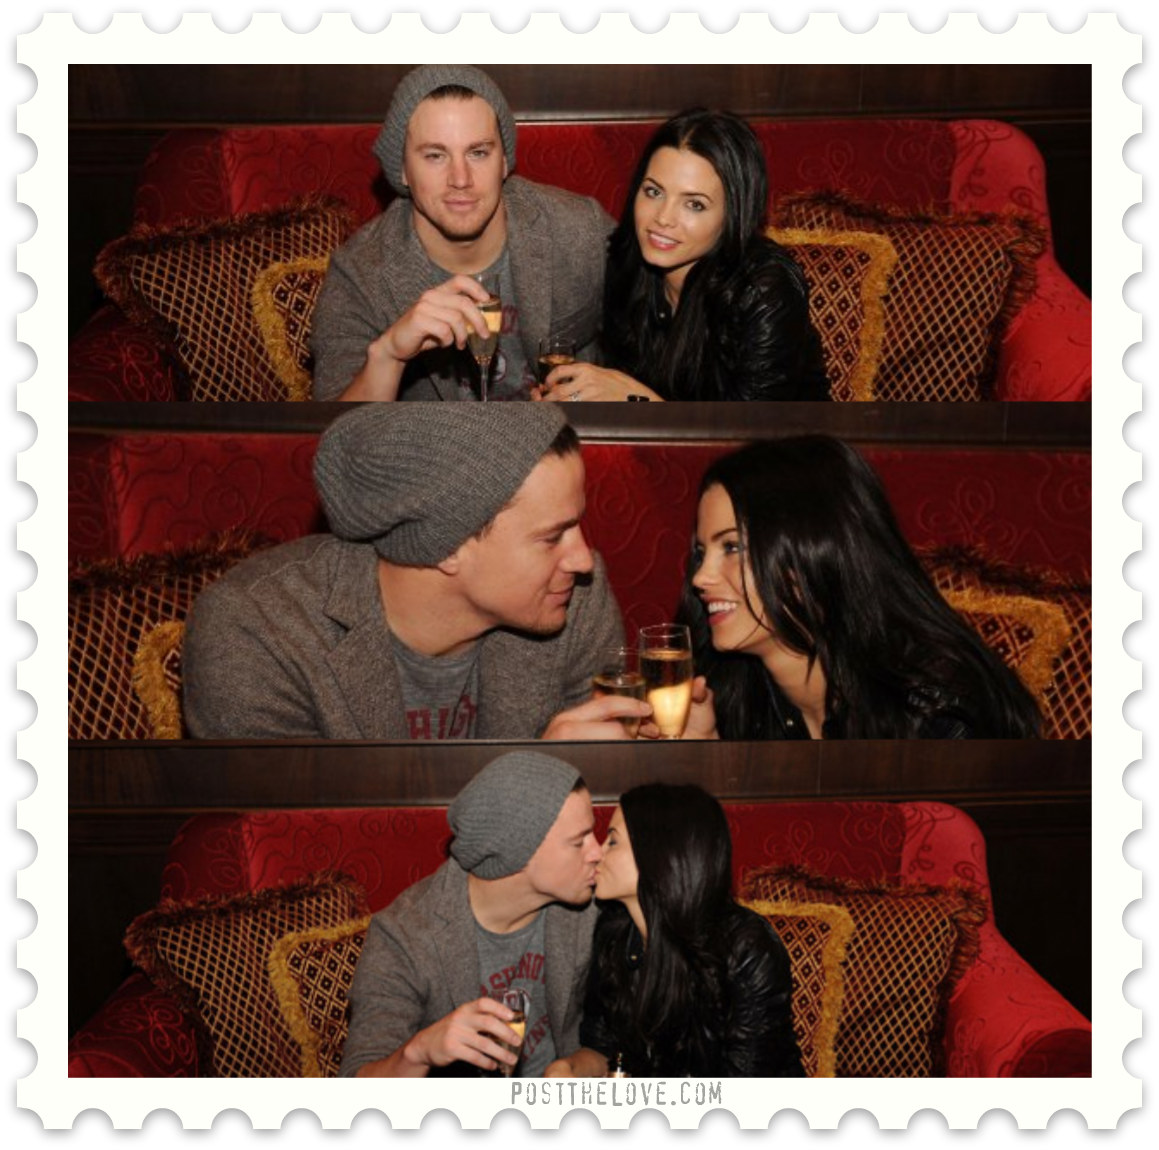 Channing Tatum and Jenna Dewan-Tatum's Vegas Date Night